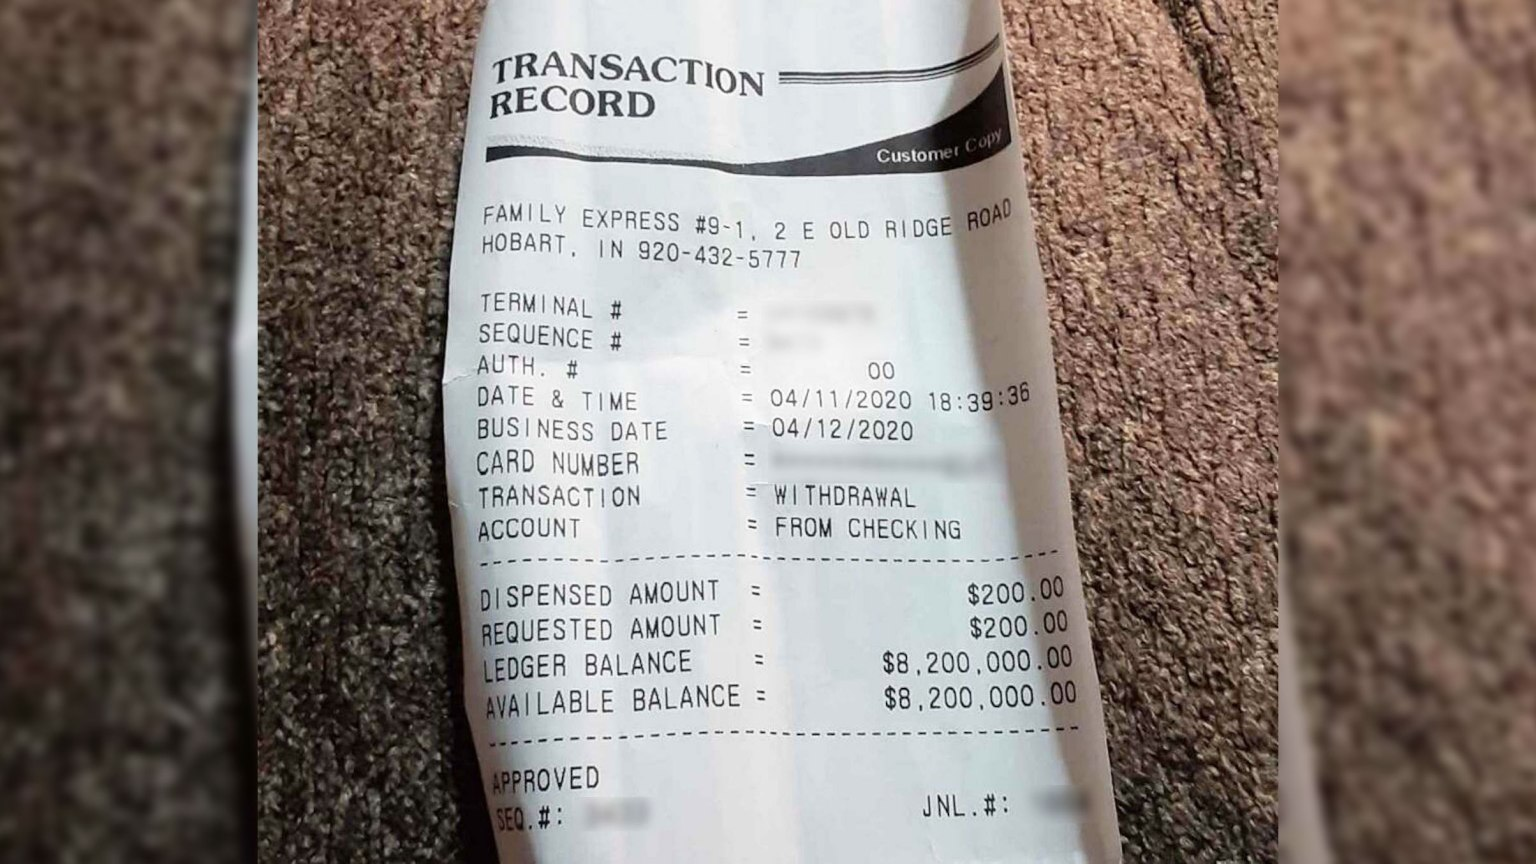 Man Withdrawals Money and Gets $8.2 Million Receipt